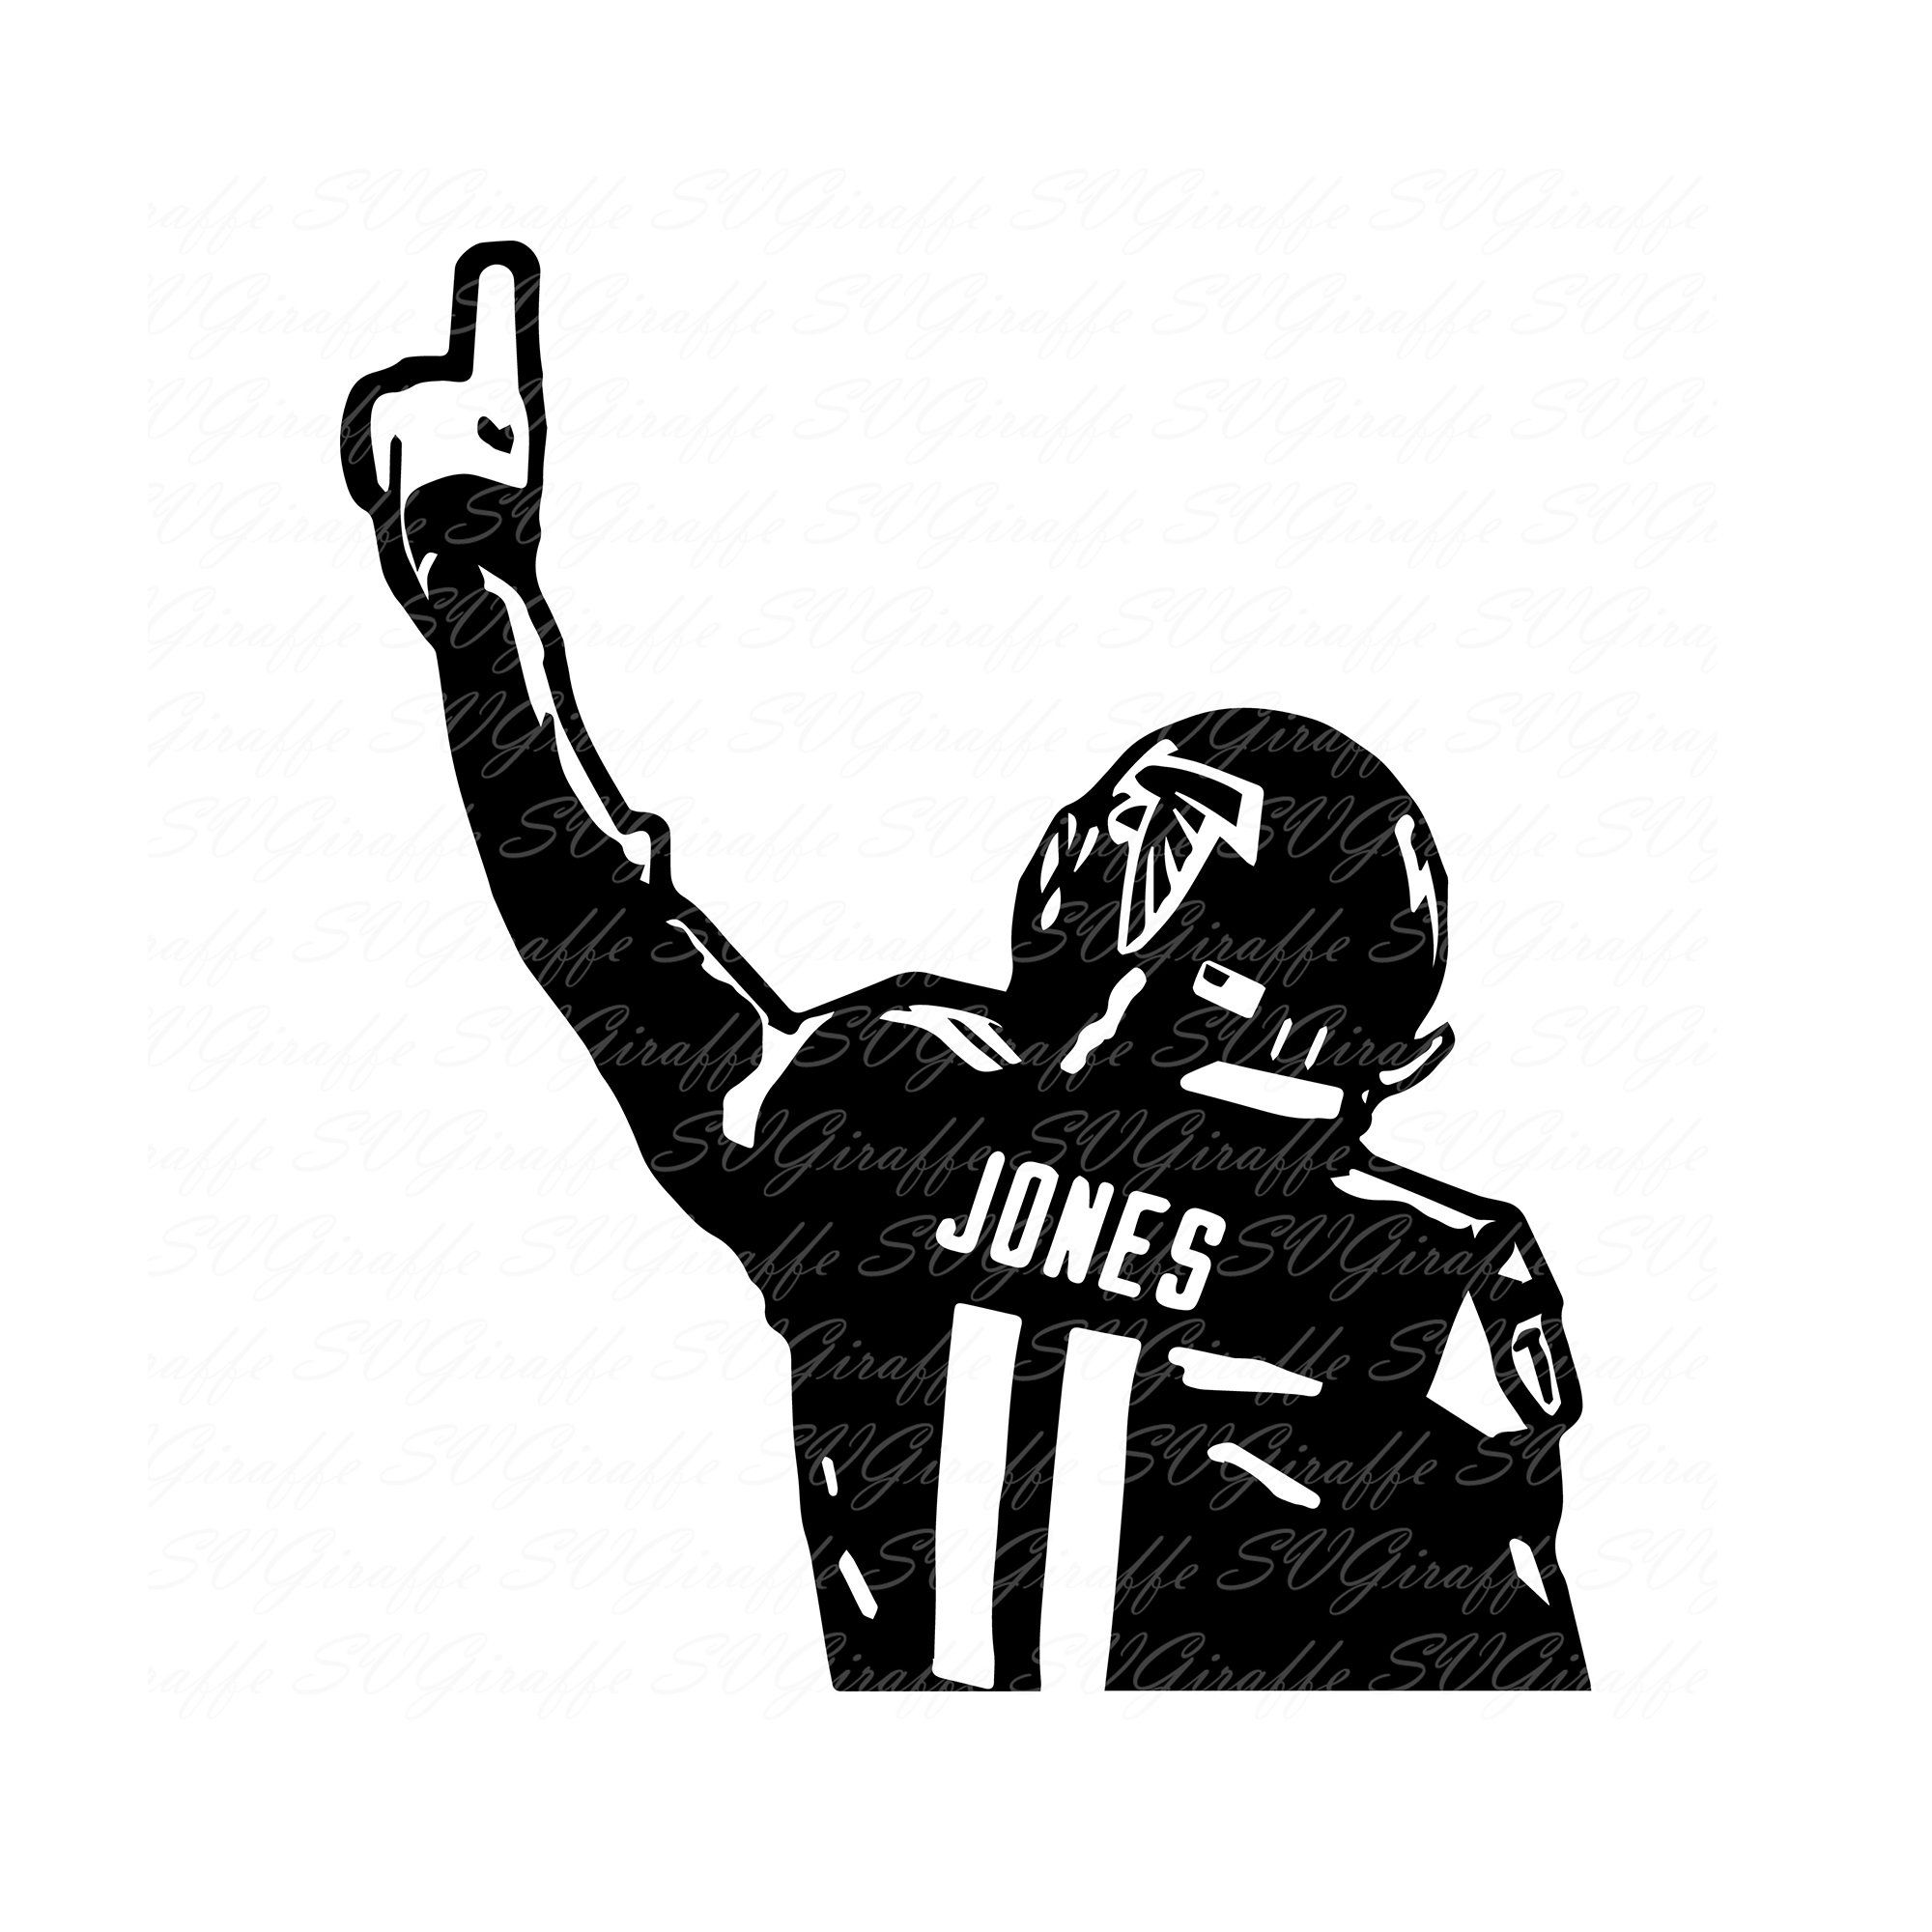 Julio Jones Svg Dxf Png Pdf Jpg Eps Files Atlanta Falcons Etsy In 2020 Julio Jones Atlanta Falcons Svg Atlanta Falcons